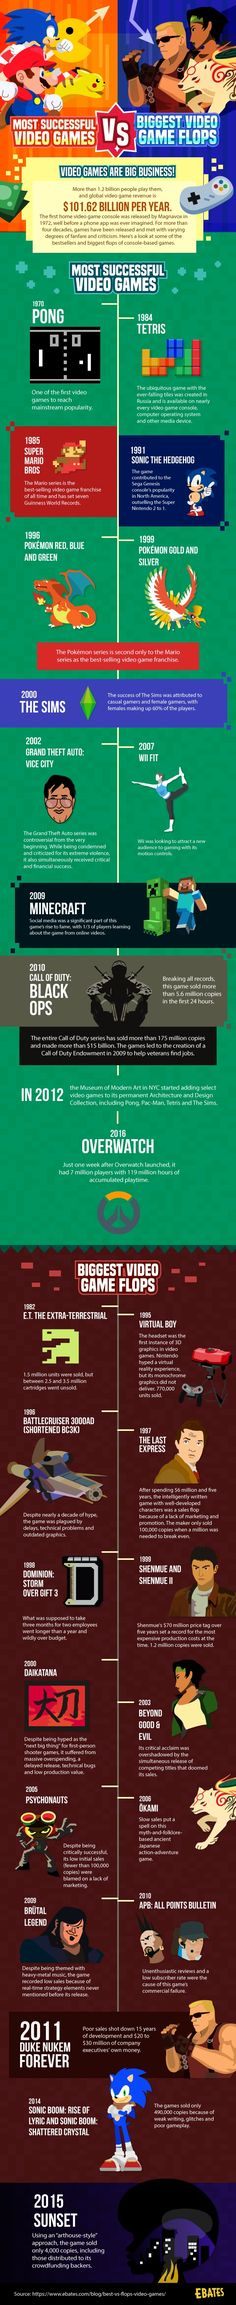 Most successful Video Games versus biggest Video Game Flops